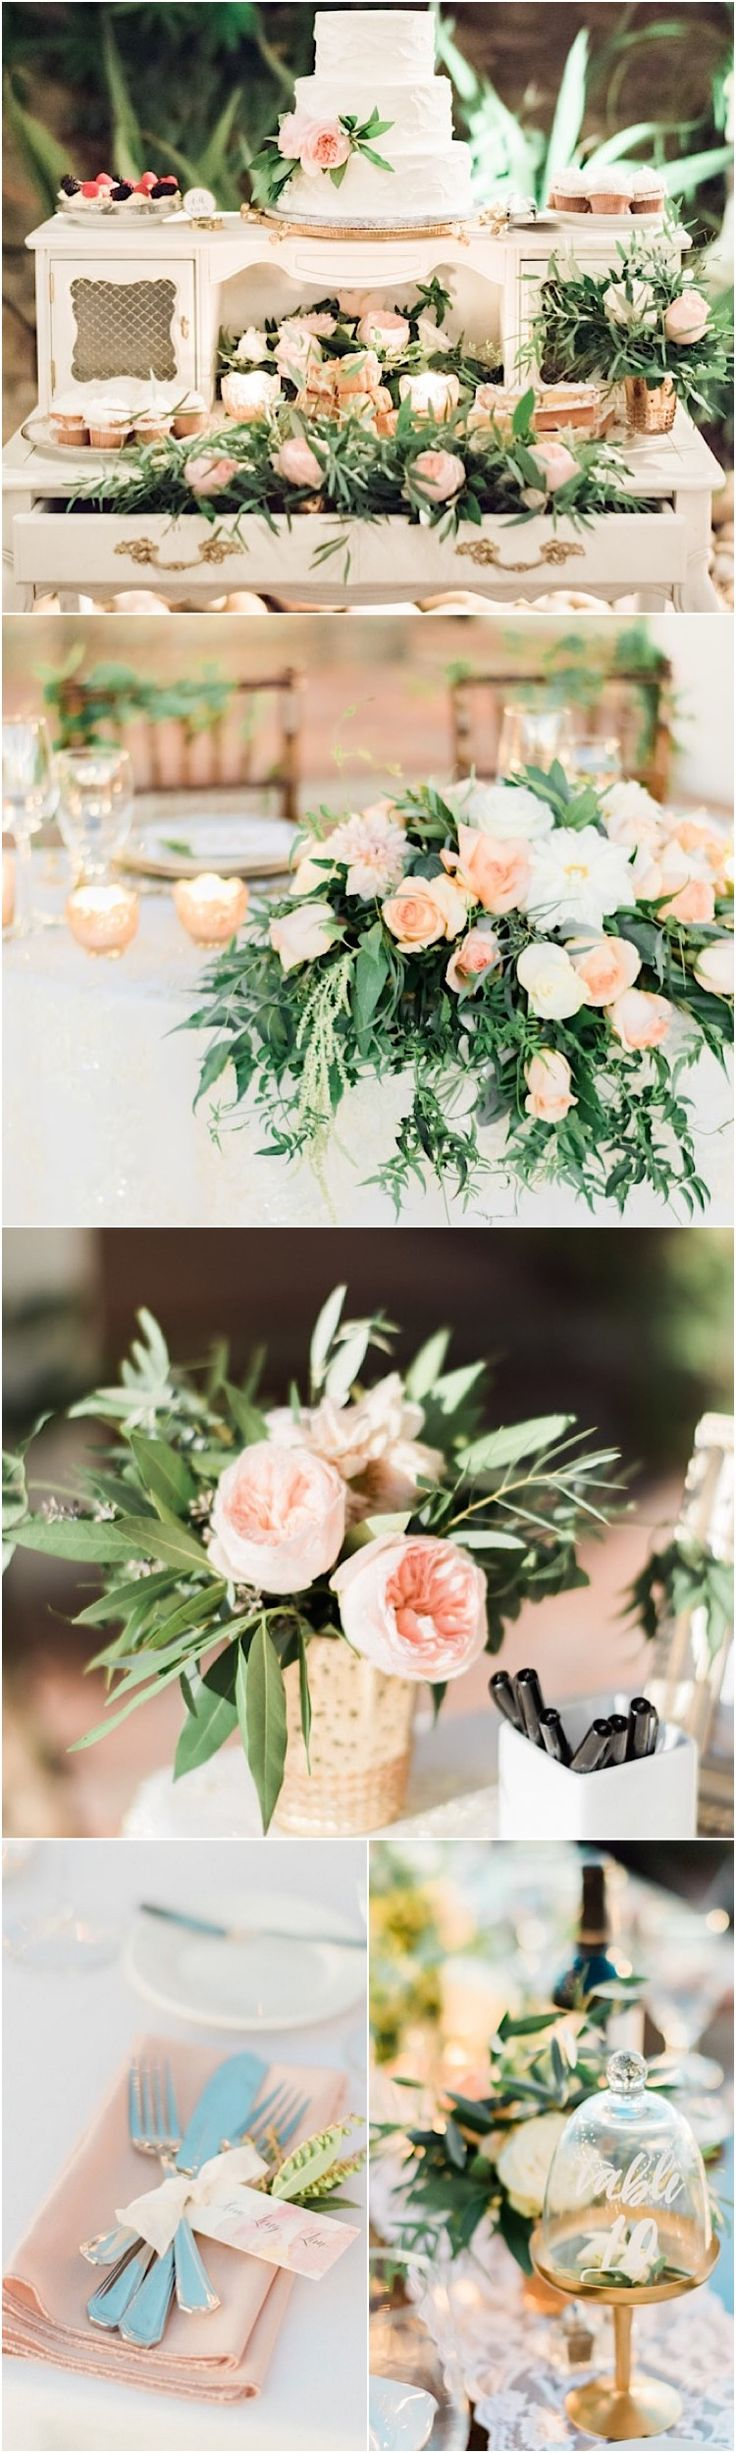 photo: Honey Honey Photography; Blush wedding reception ideas; photo: Honey Honey Photography